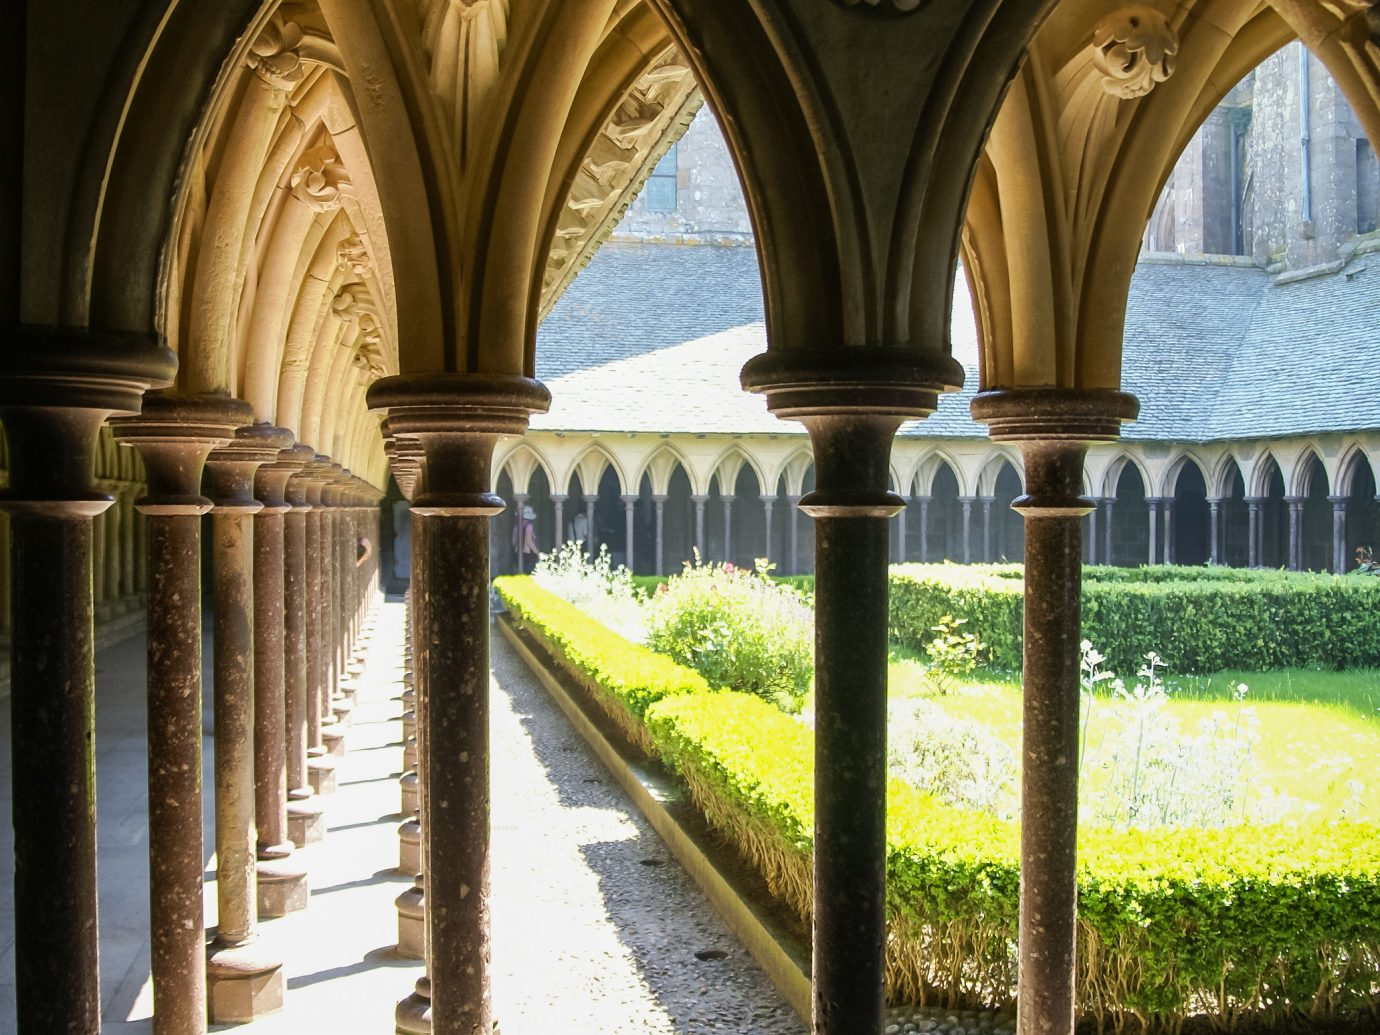 Trip Ideas structure arch Architecture building column ancient history palace monastery pole